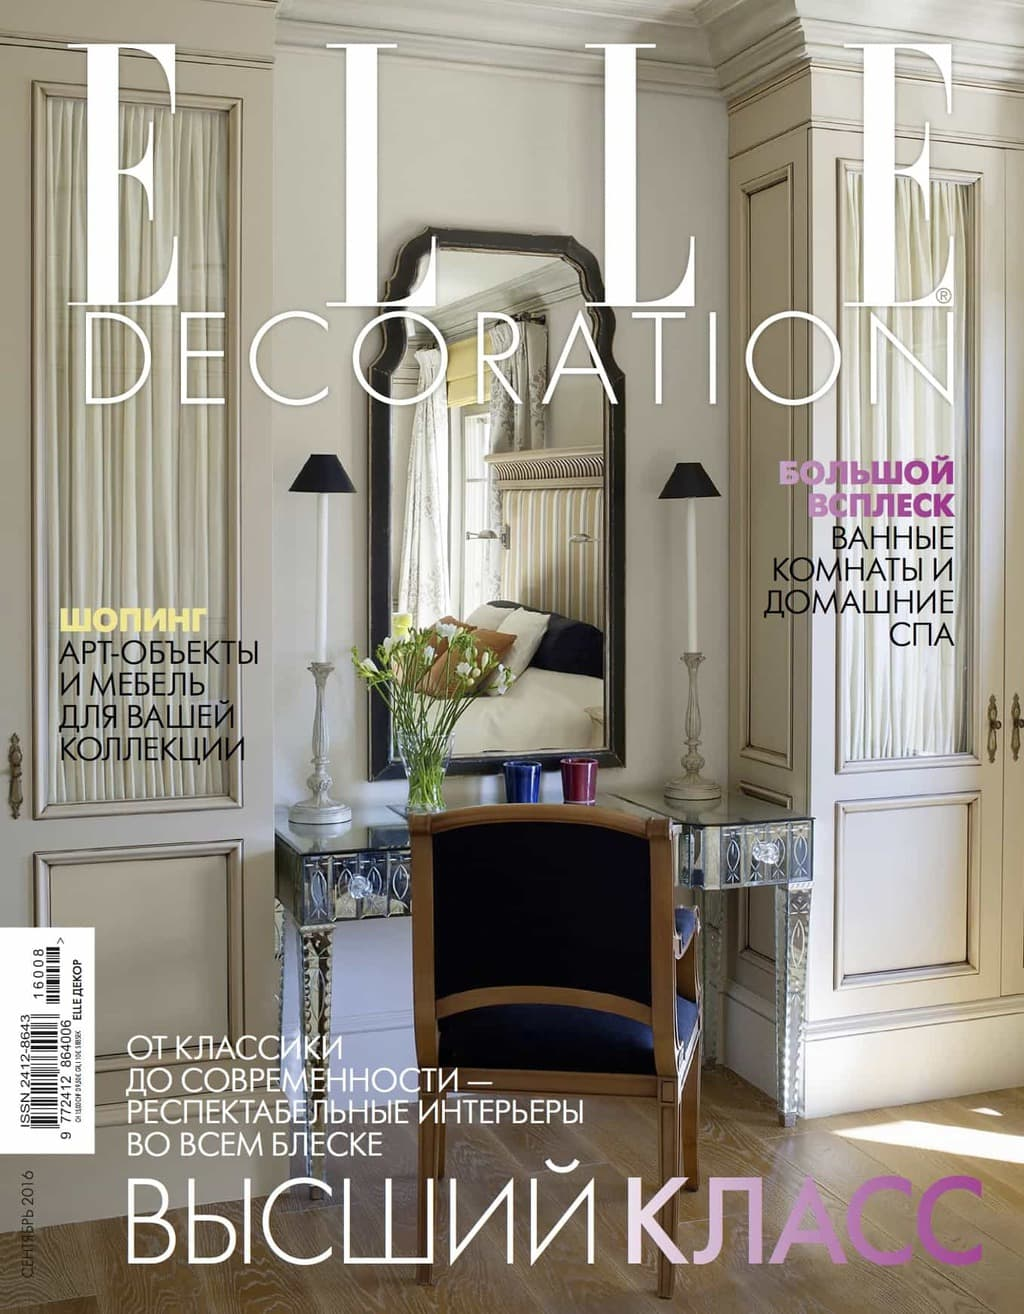 elle-decoration-cover-november